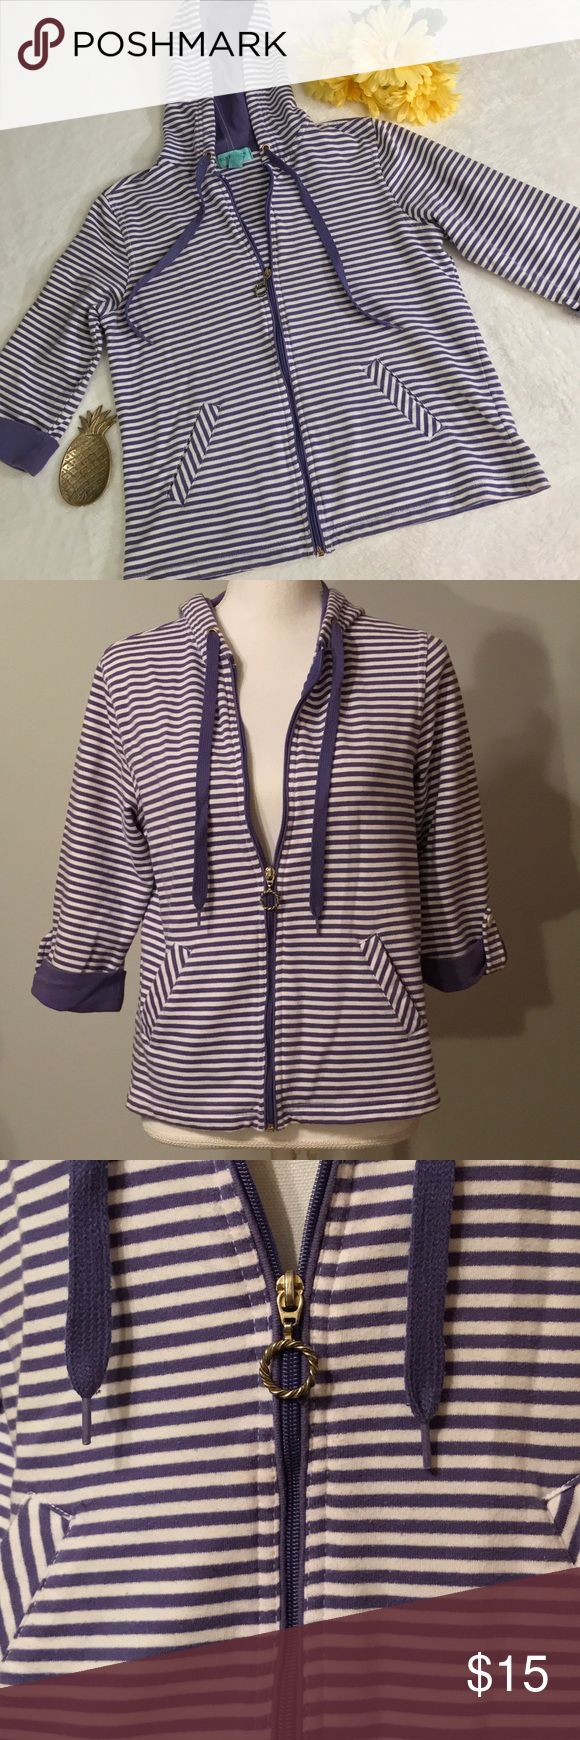 """Silver Wear New York purple striped zip up hoodie Silver Wear New York purple striped hoodie. Purple and white striped hoodie. Full zip up with cute silver circle charm zipper. Quarter length cuffed sleeves. Drawstring hoodie. Lightweight jacket. Size small. Good condition. Measurements taken laid flat. 16"""" shoulder width, 19 ½"""" bust, 22 ½"""" length. Silver Wear Tops Sweatshirts & Hoodies"""